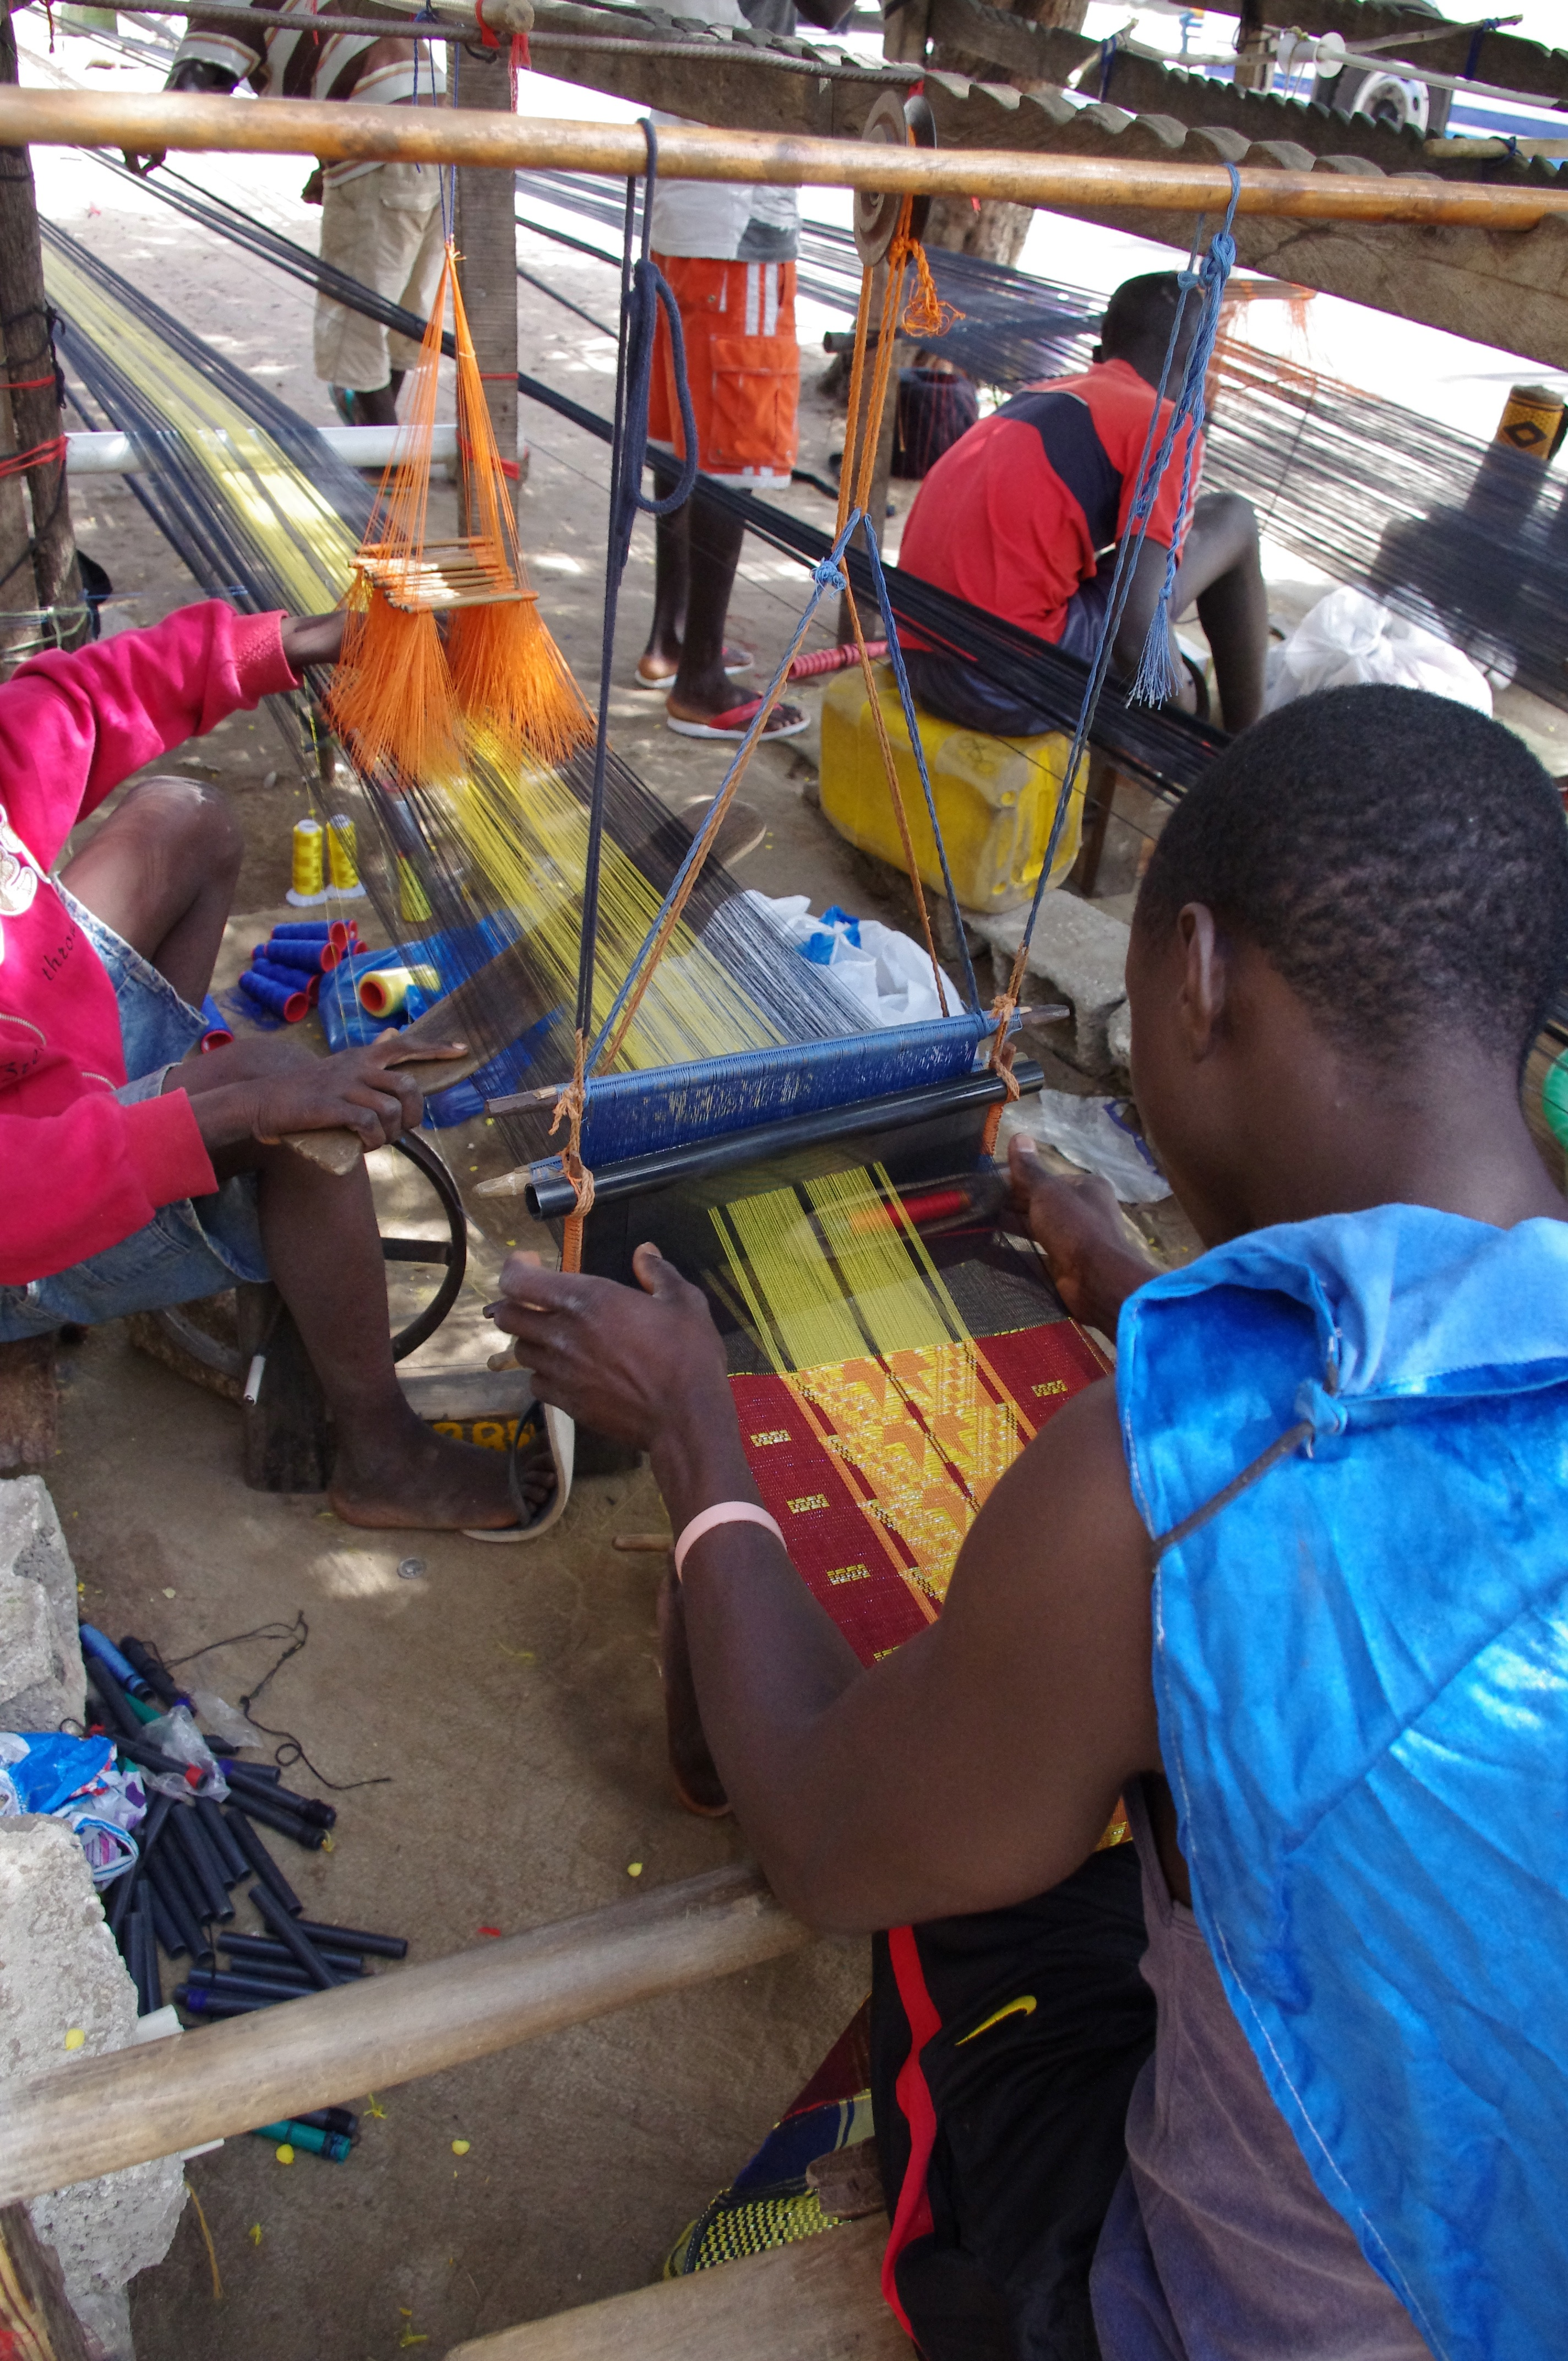 Mandjak weaving on the street in Dakar